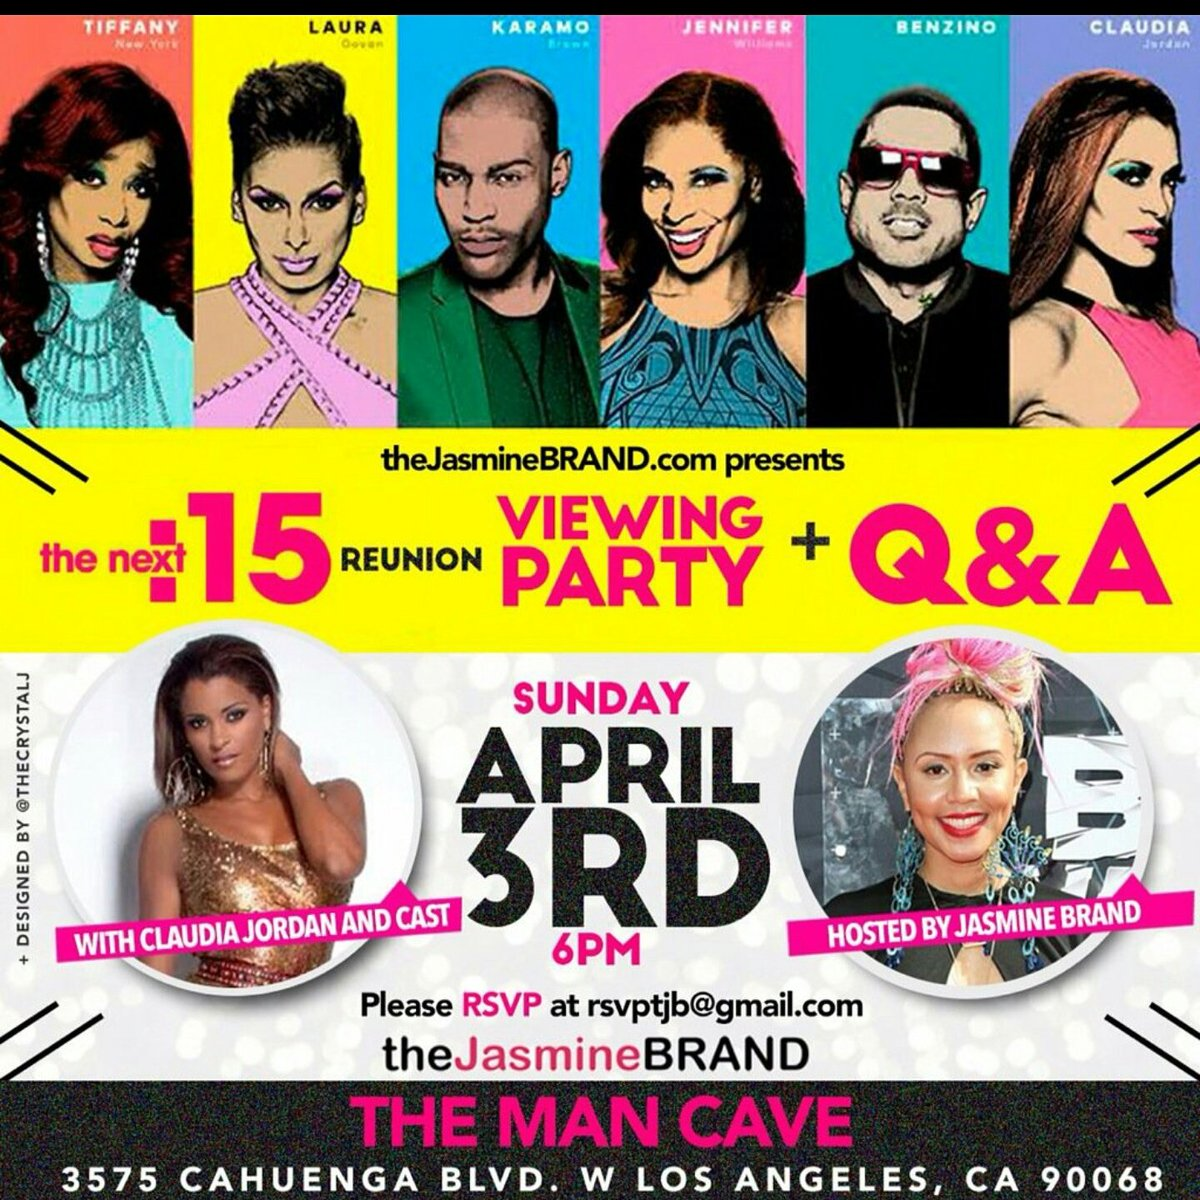 Come out to this on Sun. I HAVE 2b there! THE TEA  IS SERVED!!! 0.@thejasminebrand @claudiajordan https://t.co/1GiLQAaM8a